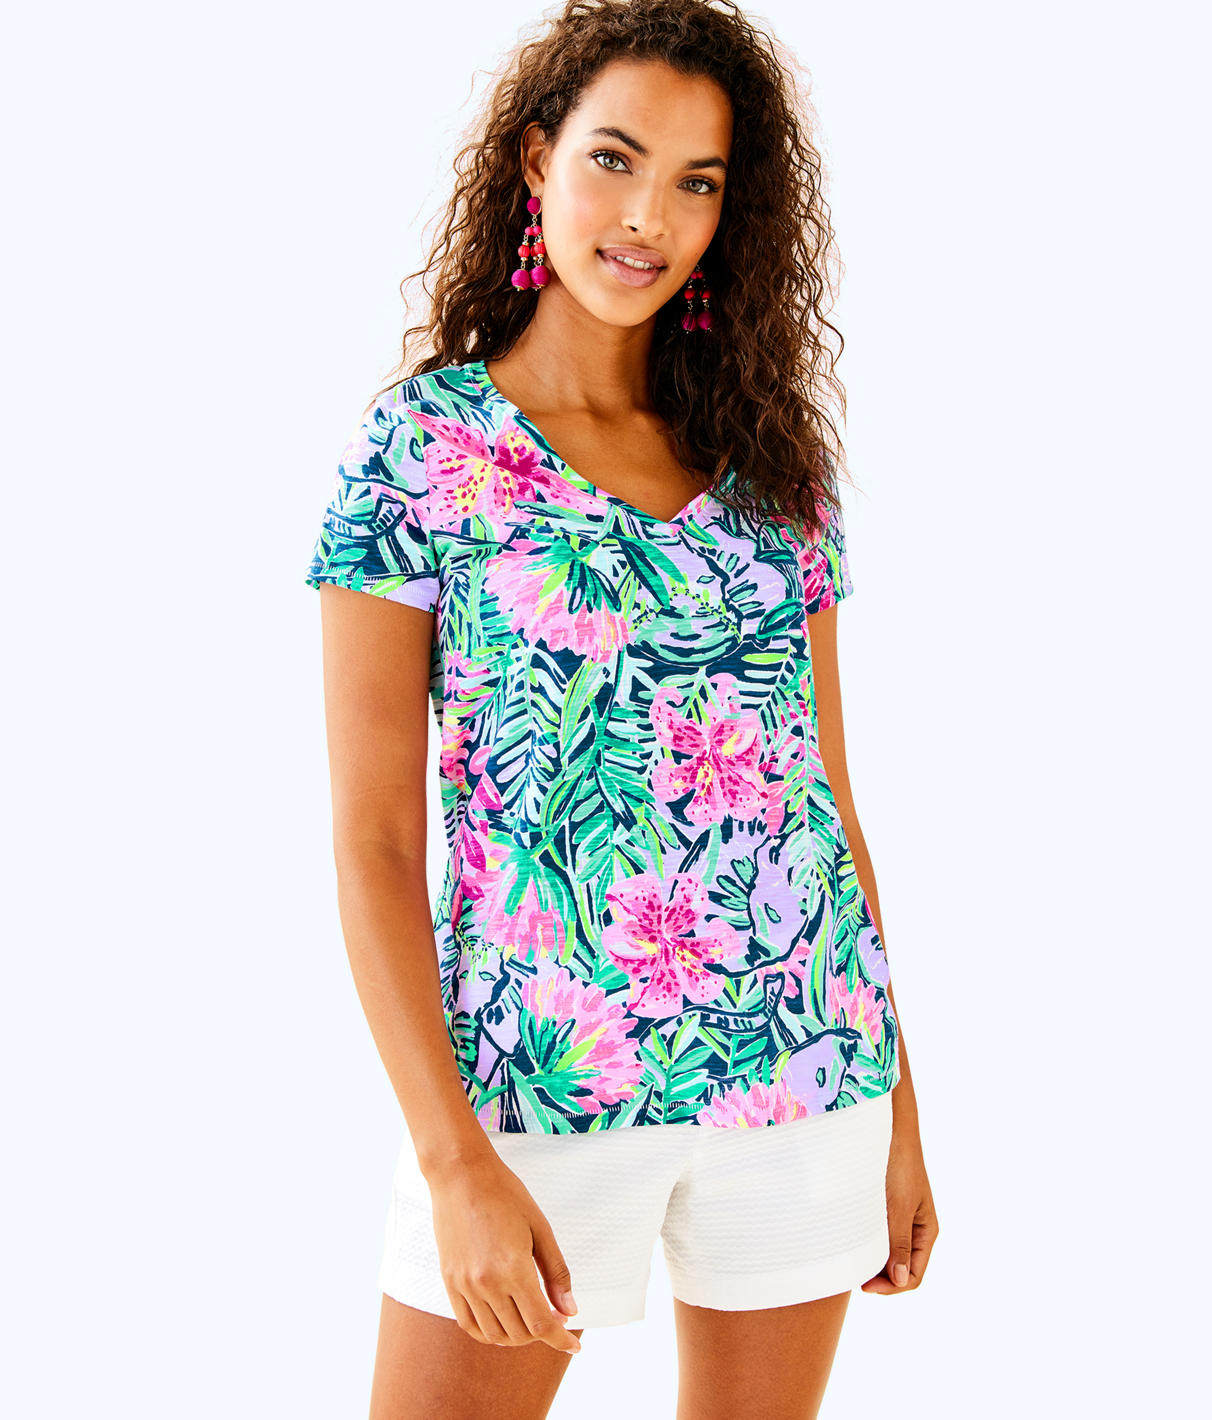 Lilly Pulitzer Lilly Pulitzer Womens Etta V-Neck Top